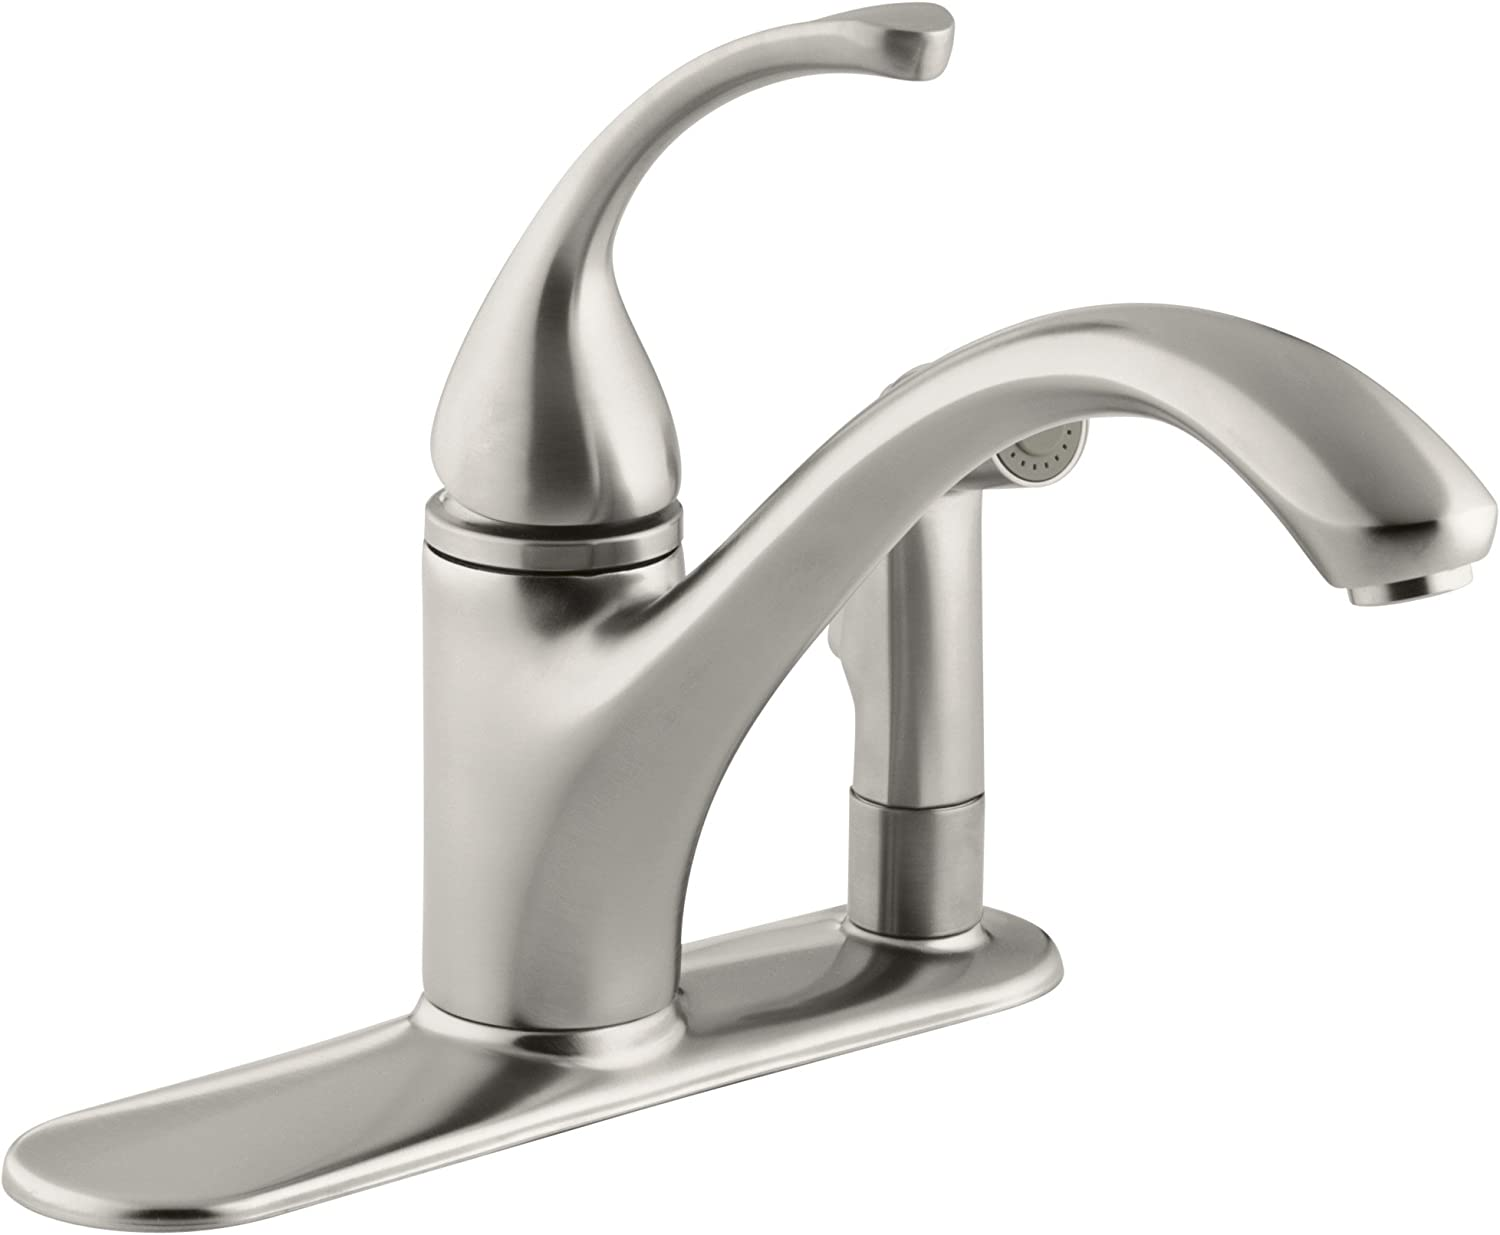 Kohler 10413 Vs Forte R 3 Hole Sink 9 1 16 Spout With Matching